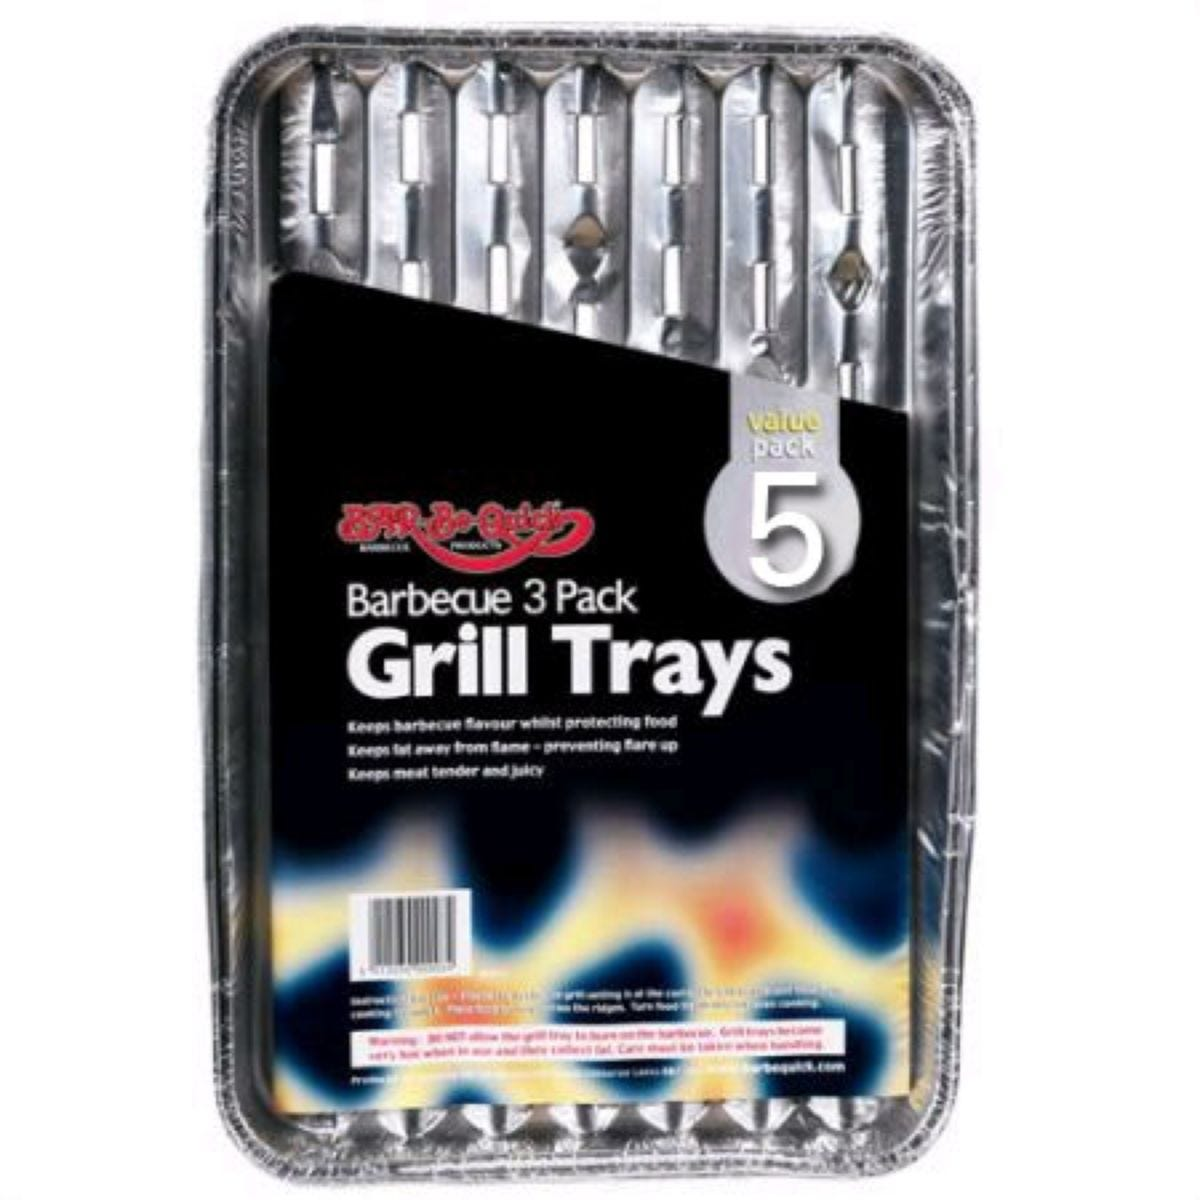 Bar-Be-Quick Grill Trays - Pack of 5